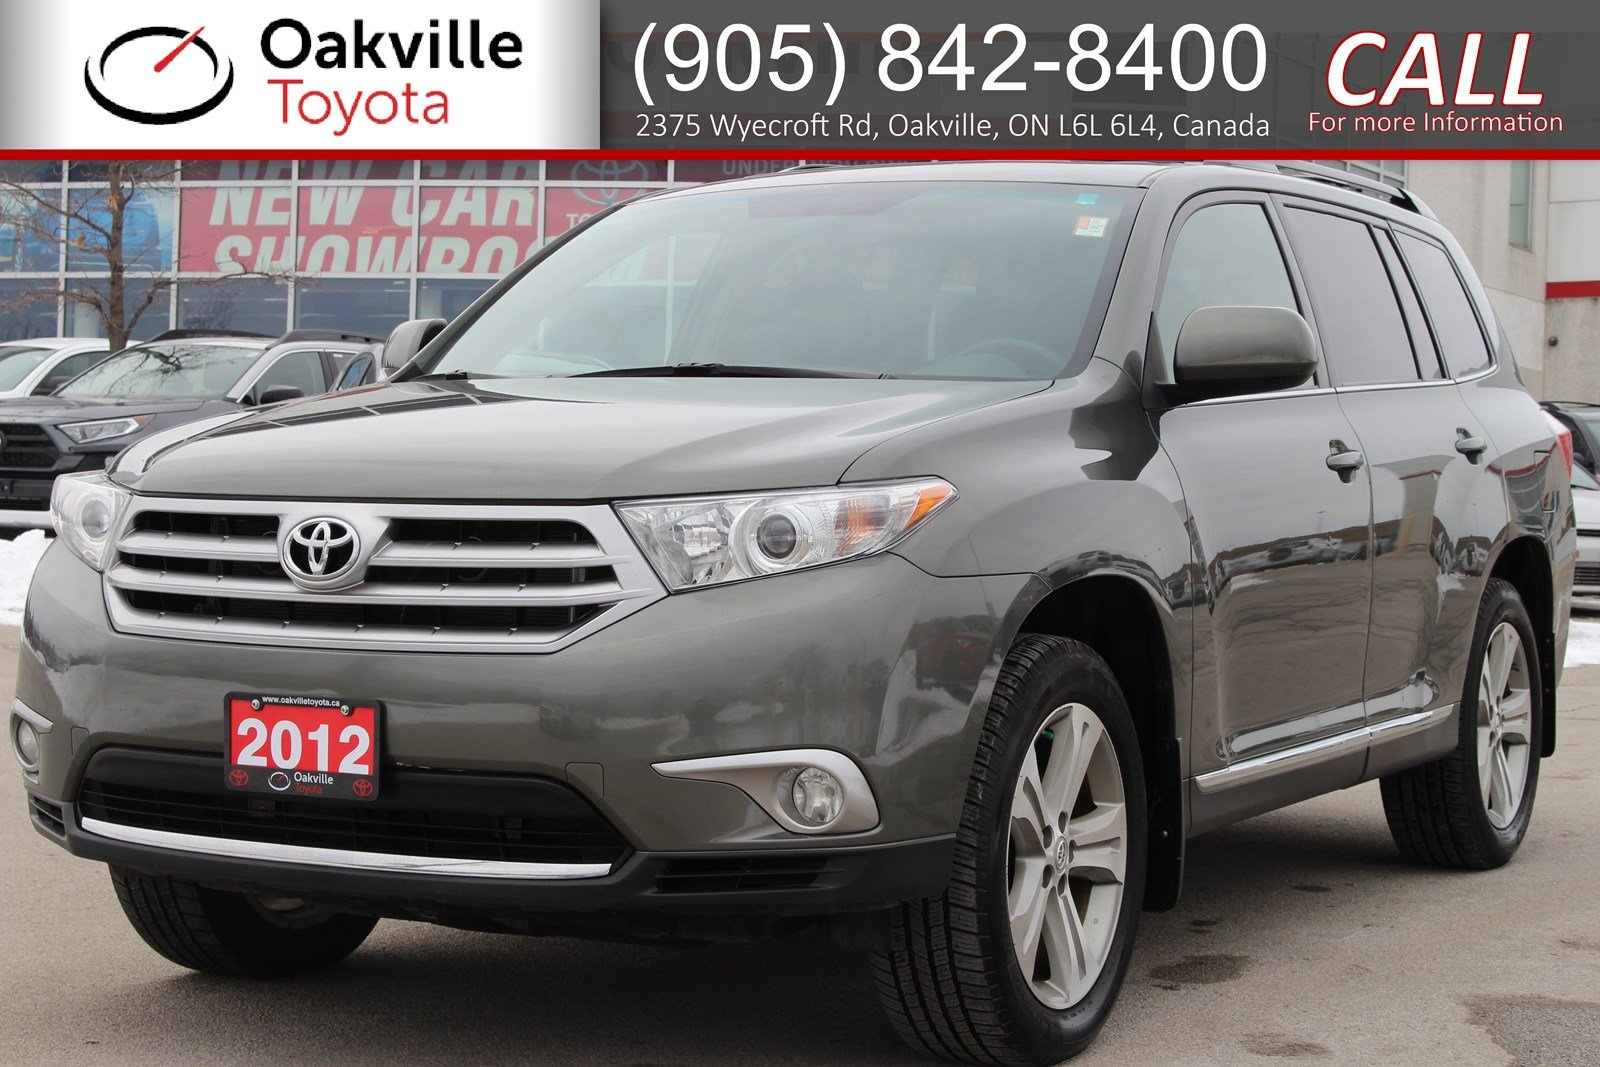 Pre-Owned 2012 Toyota Highlander 4WD with Low Kilometres